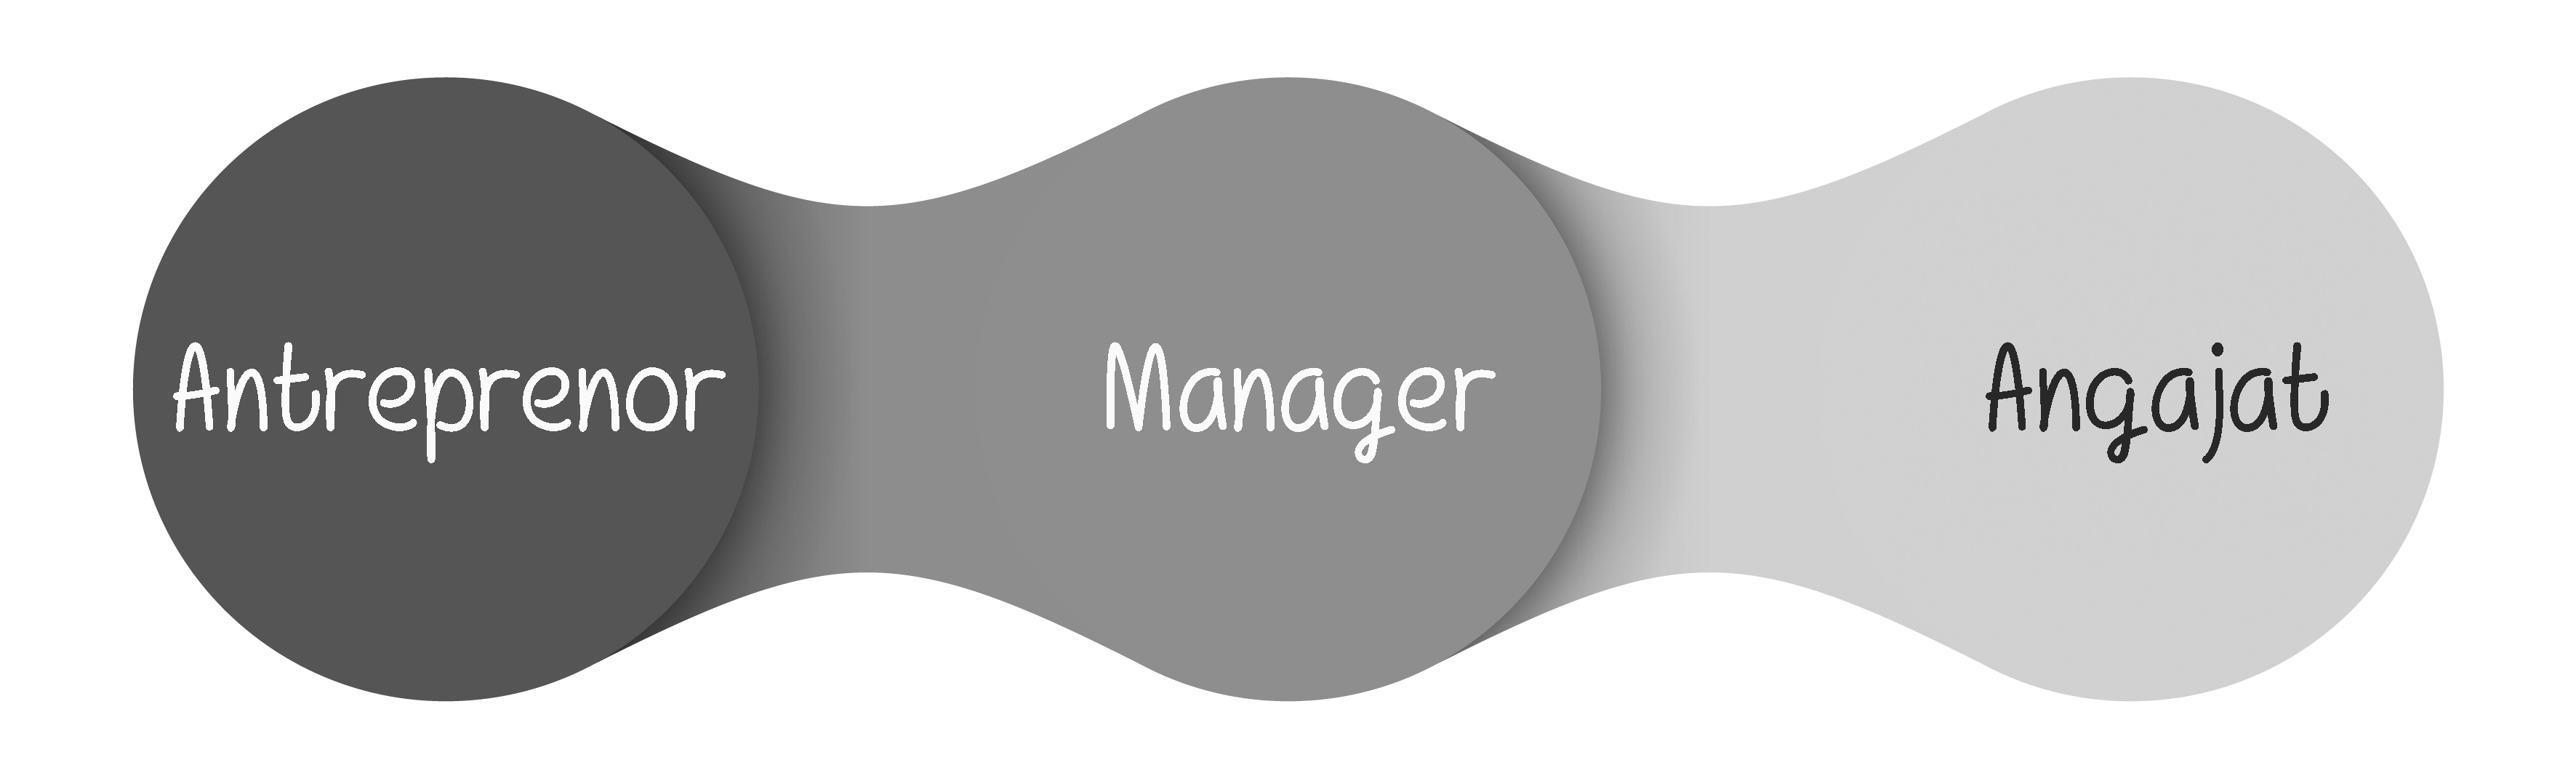 antreprenor-manager-angajat